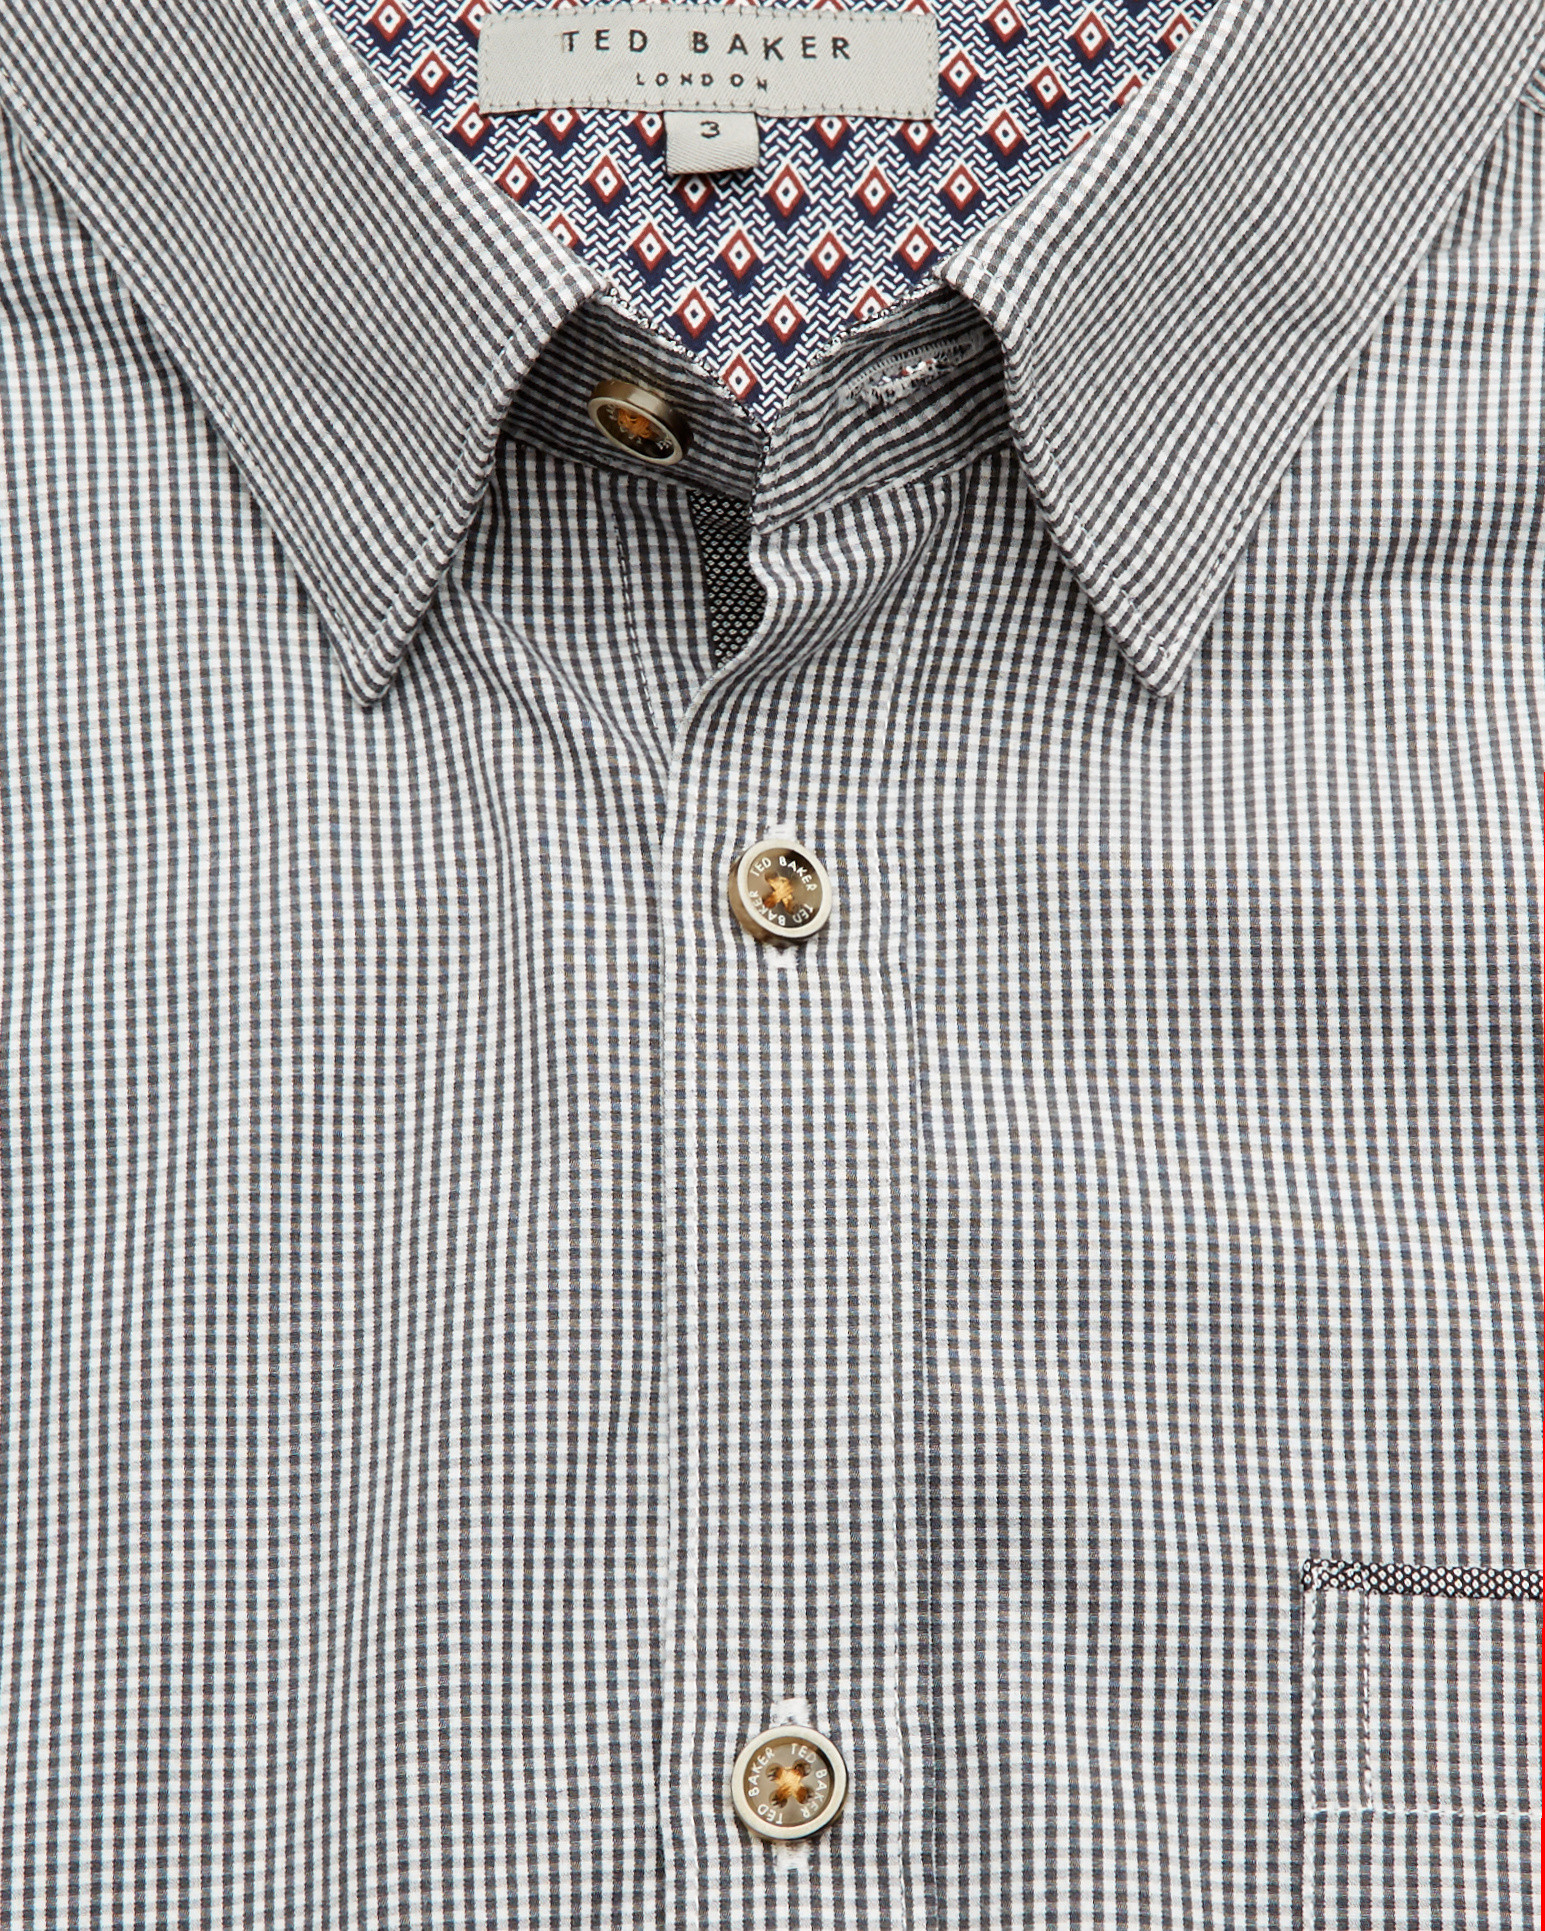 e351ab89c03c50 Lyst - Ted Baker Twosoft Micro Check Shirt in Gray for Men